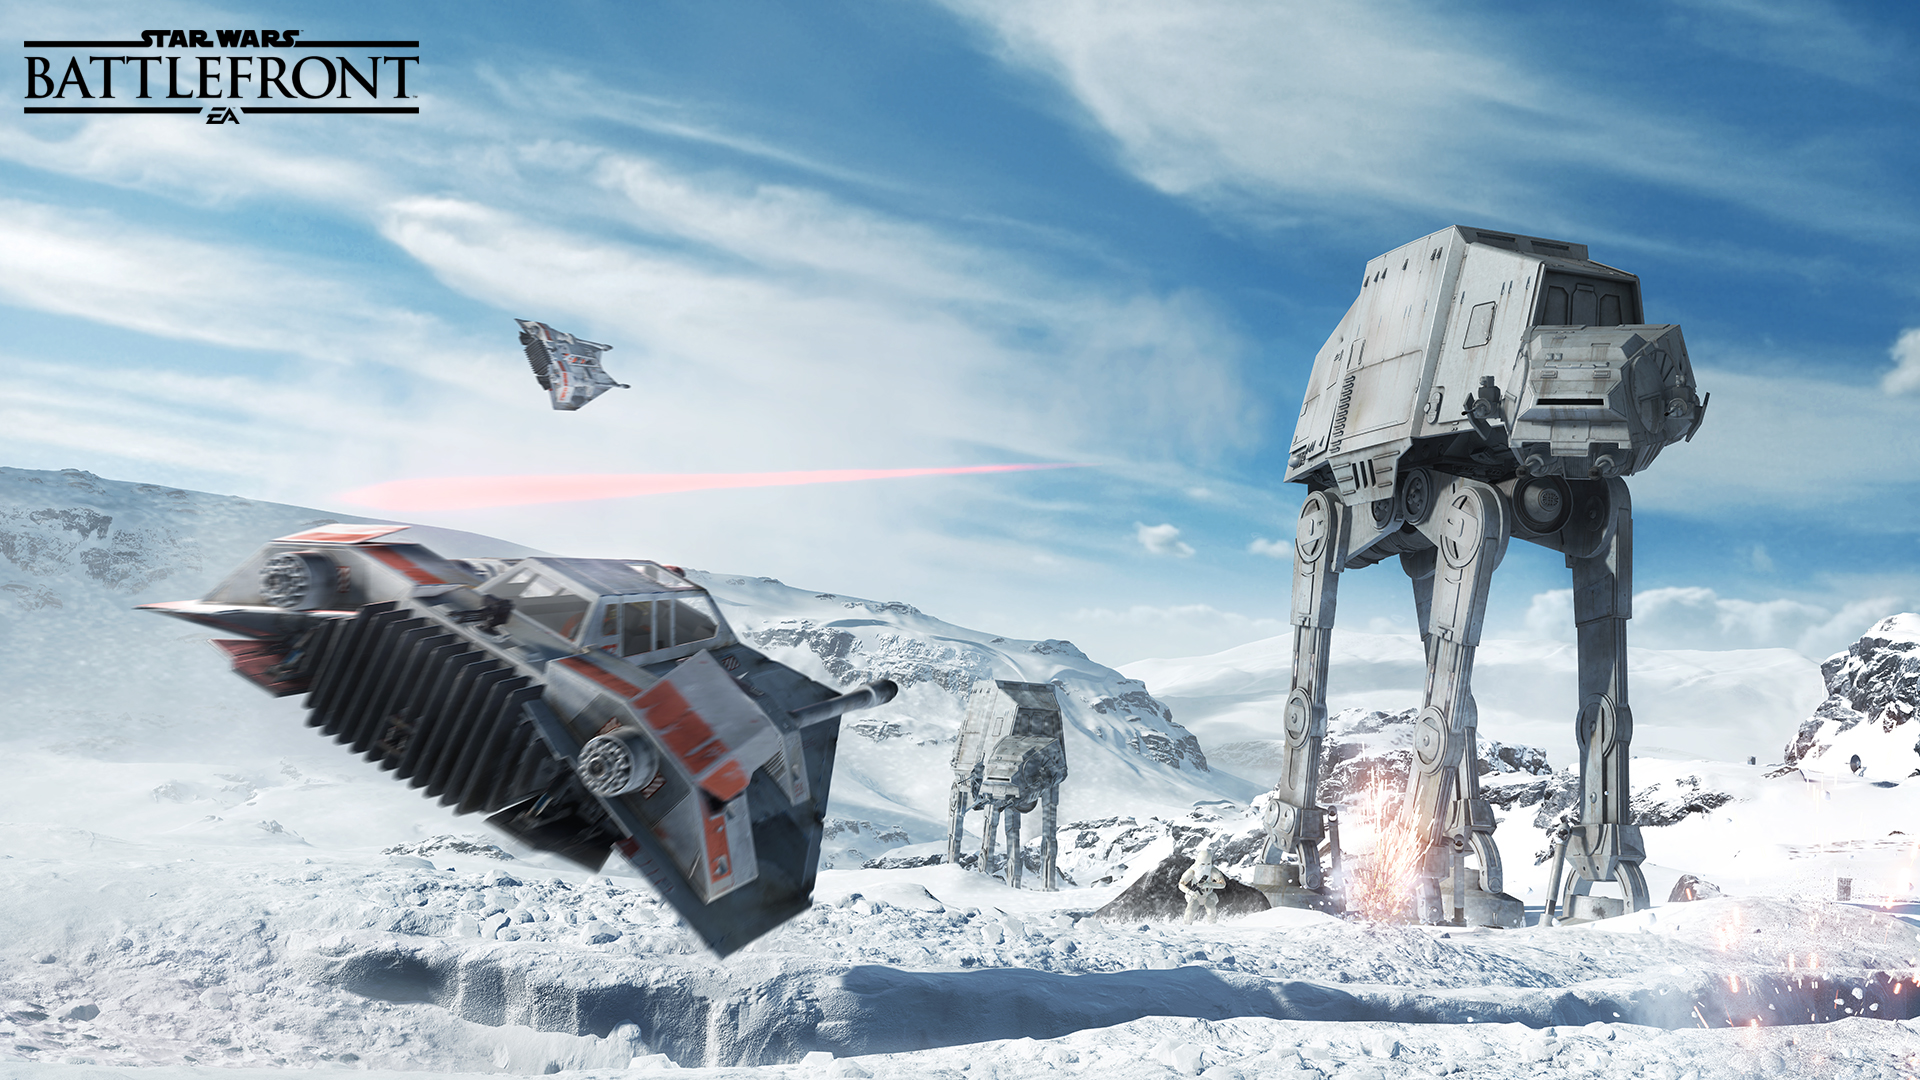 star wars battlefront bespin dlc and new patch now out, full notes